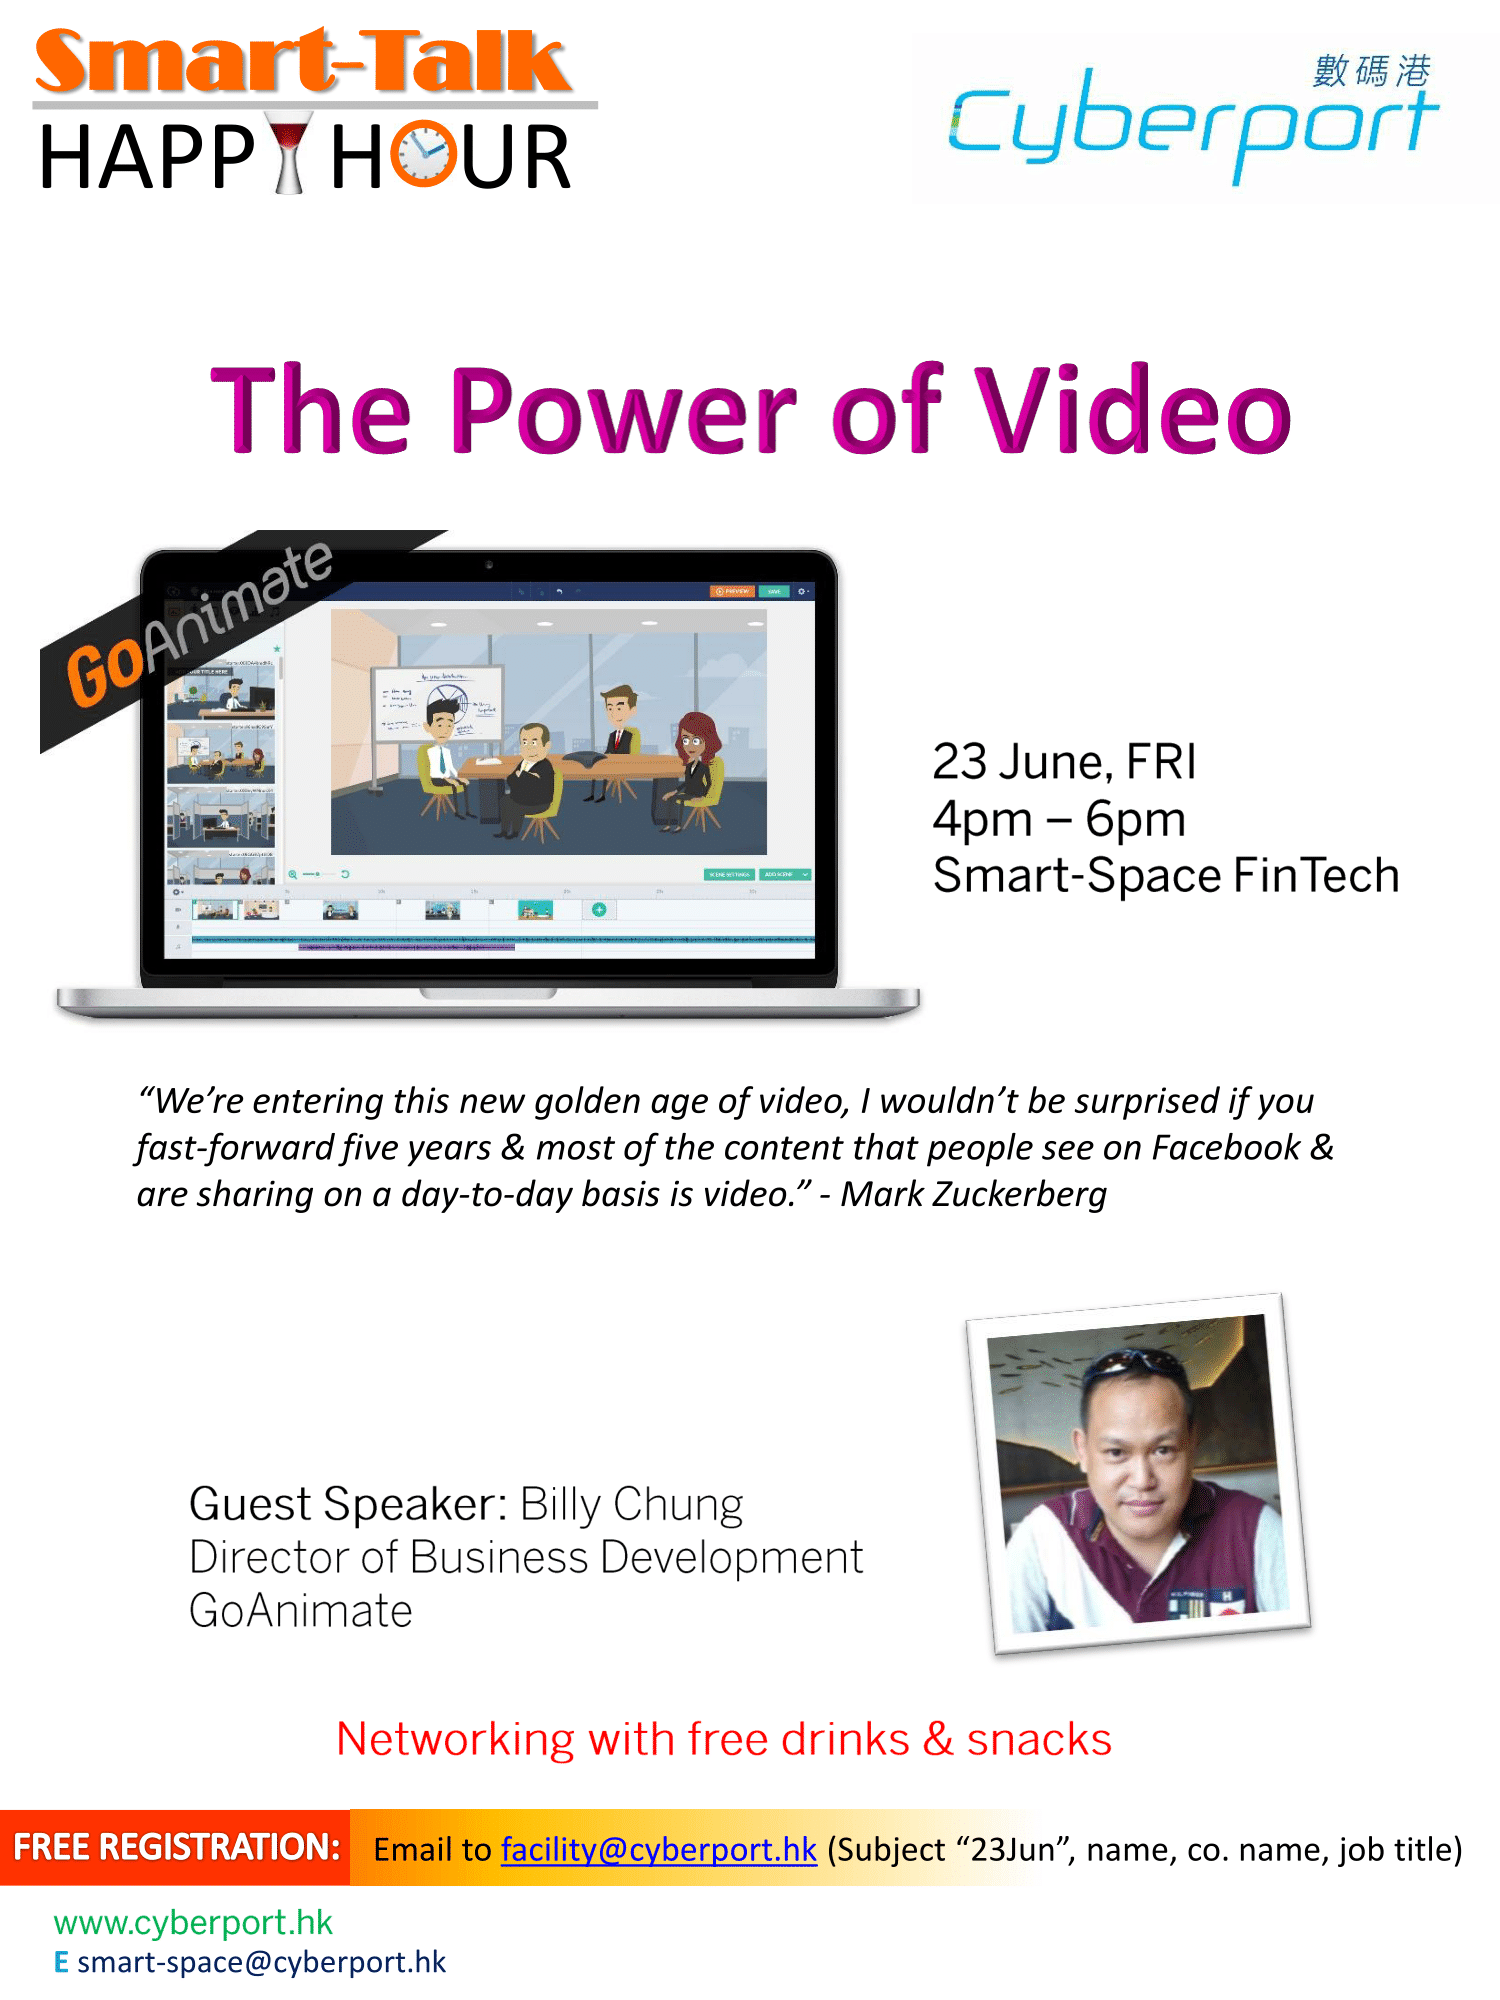 Smart Talk & Happy Hour: The Power of Video